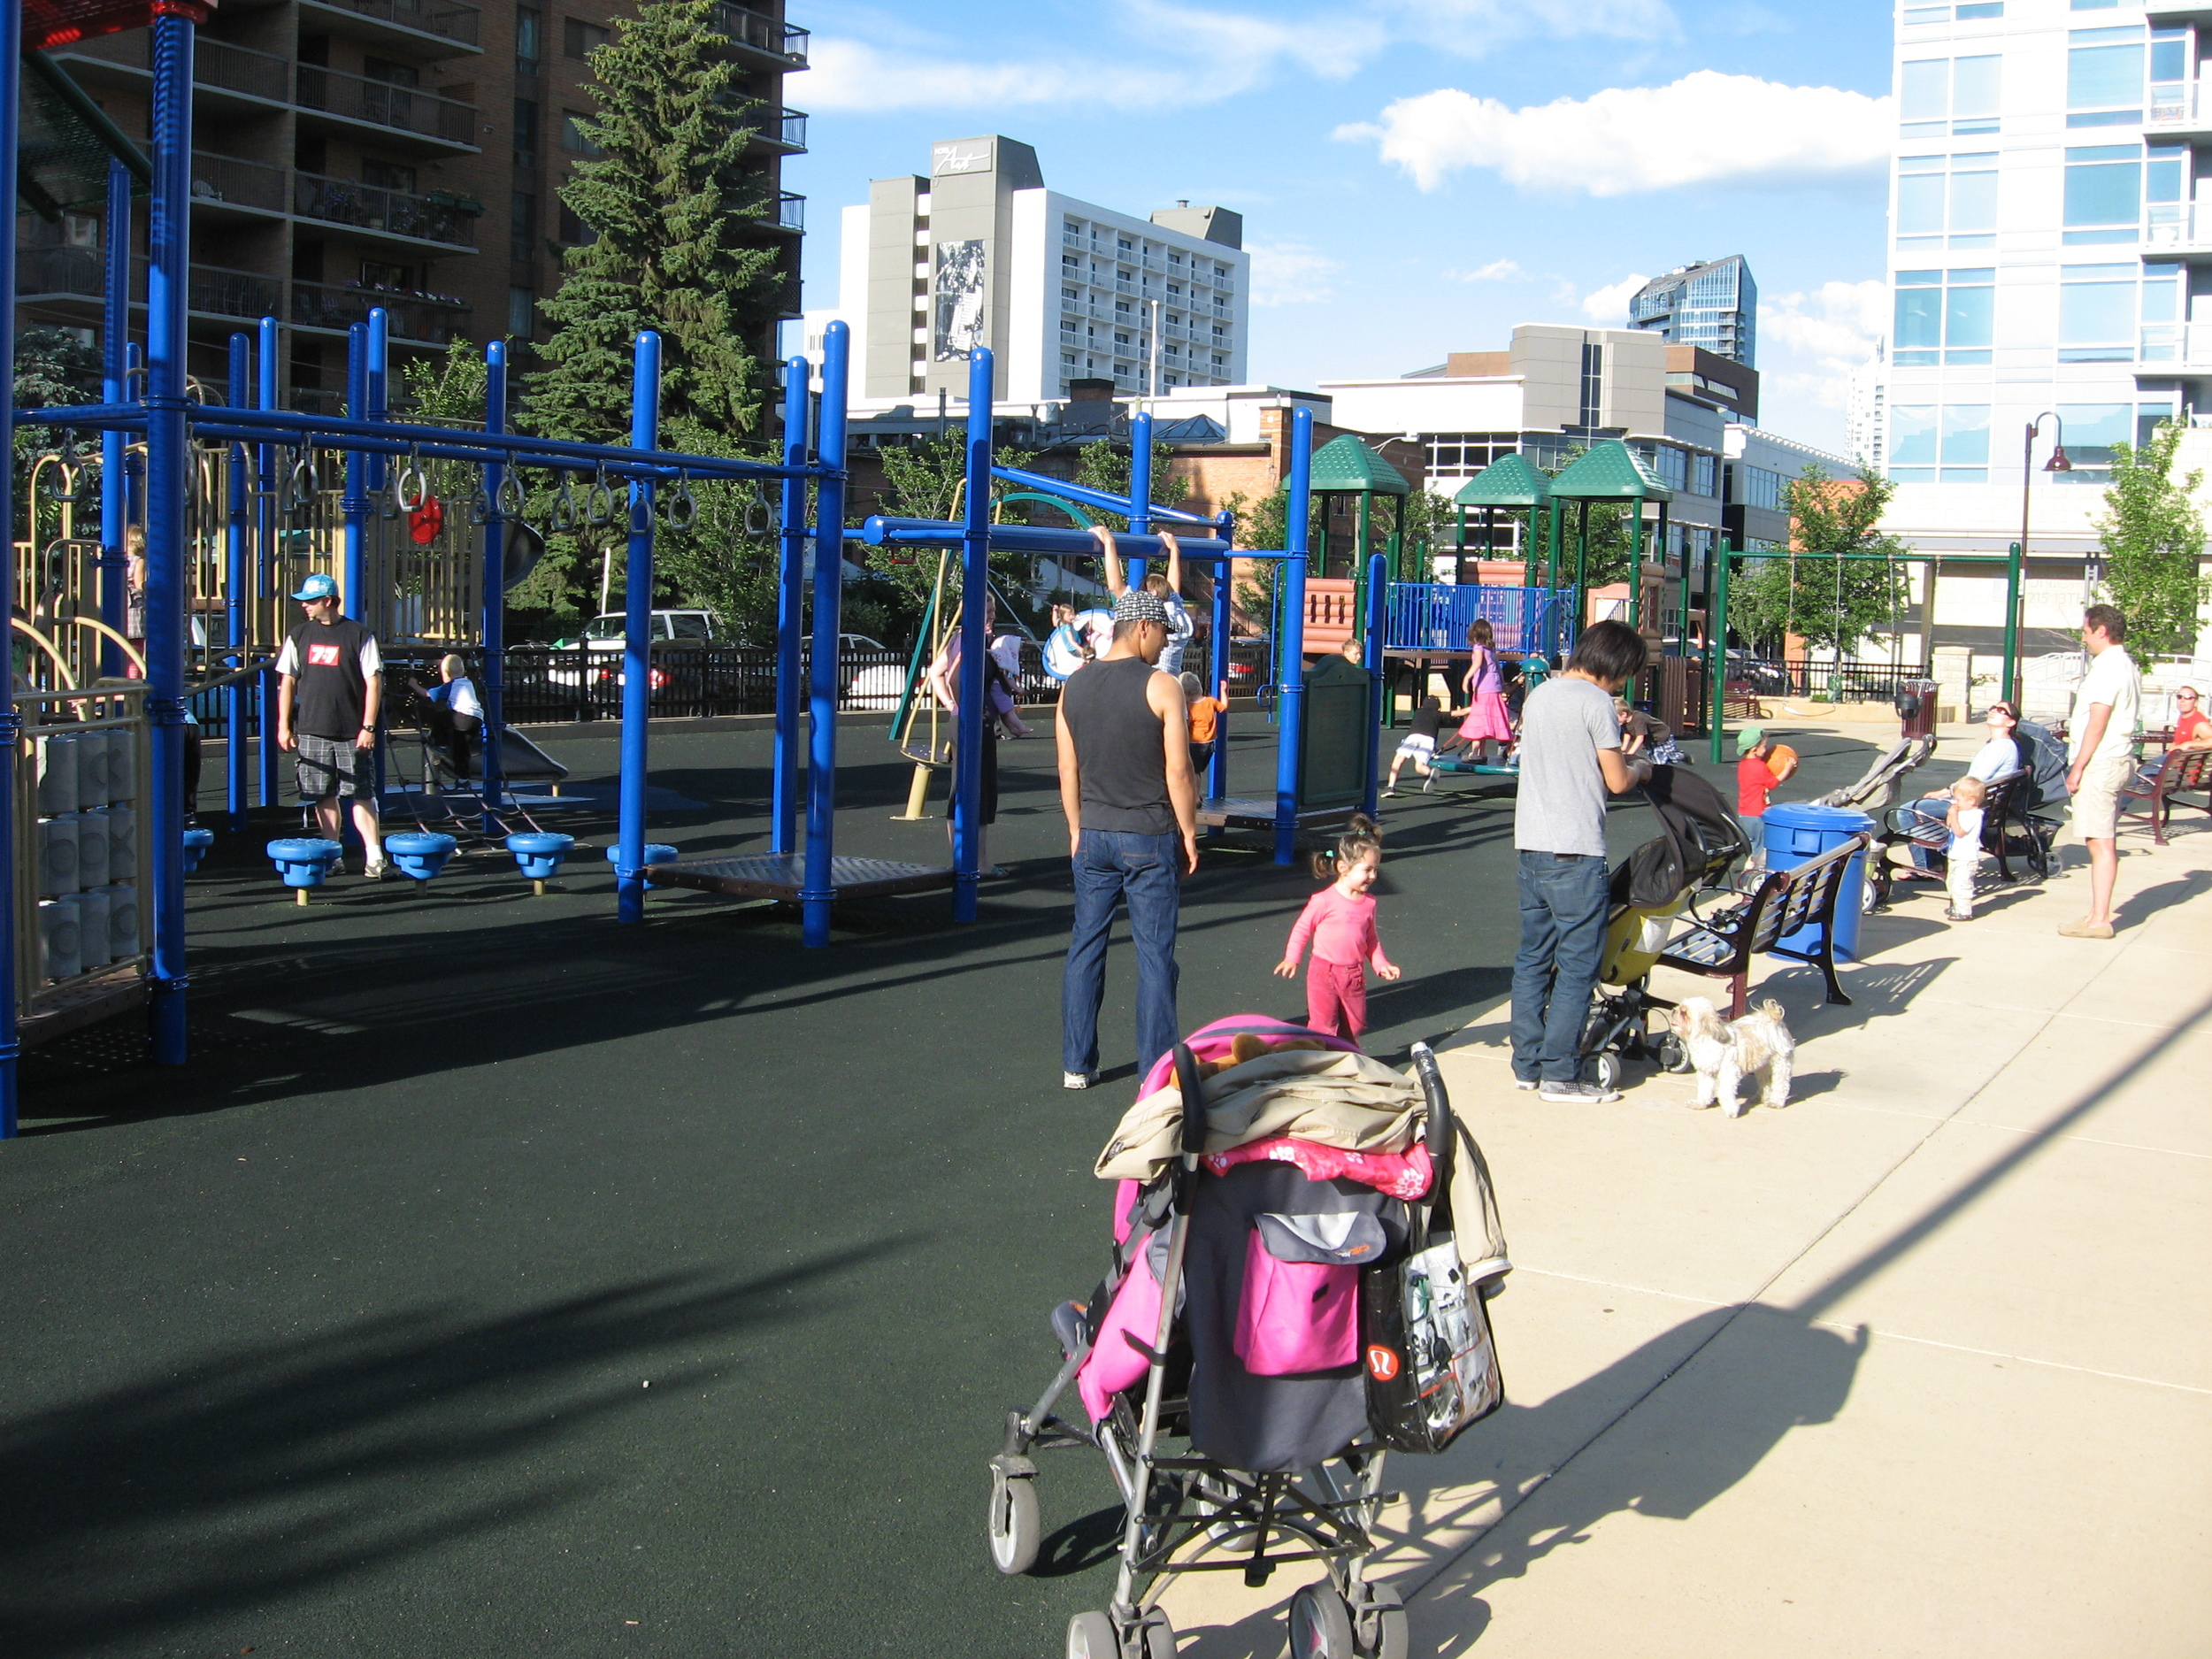 The Haultain Park playground in the Beltline Calgary's highest density community is popular with young families. In Calgary, condo living is great for young families, but that soon changes as they grow up and need more space.